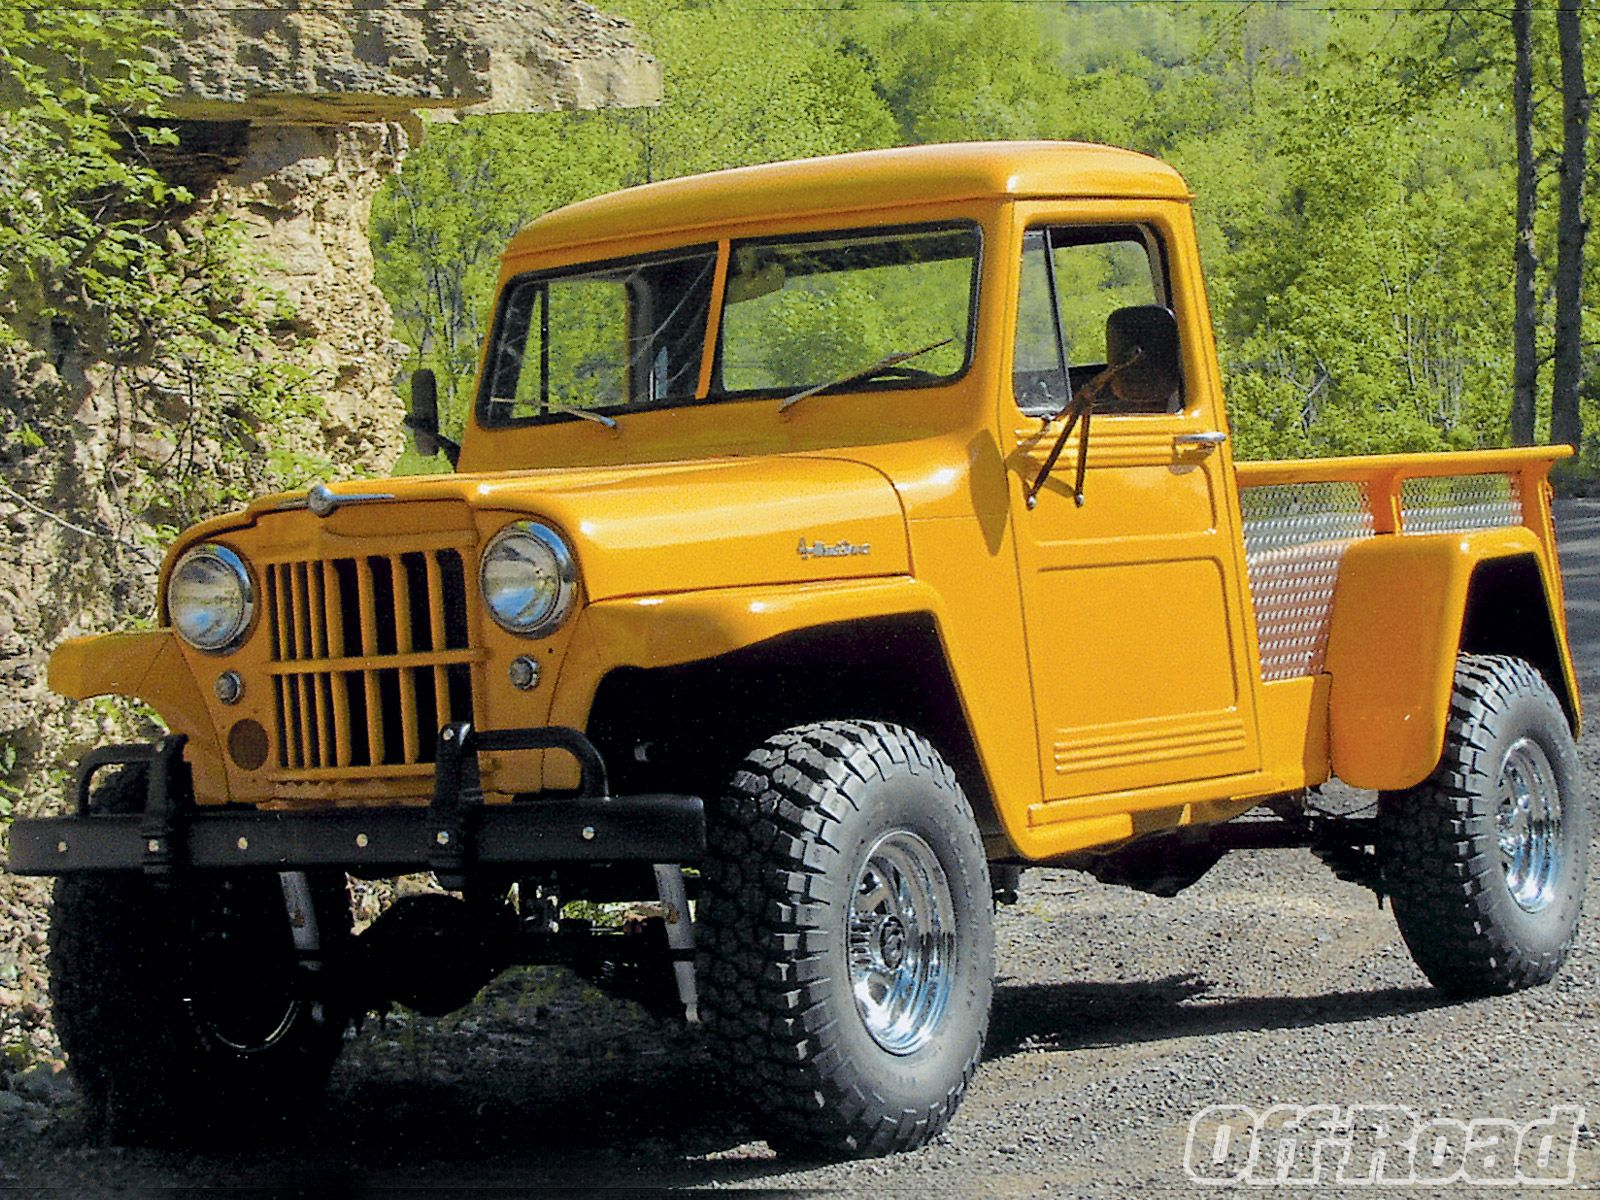 Jeepfunfacts Companies That Have Once Owned What We Know As The